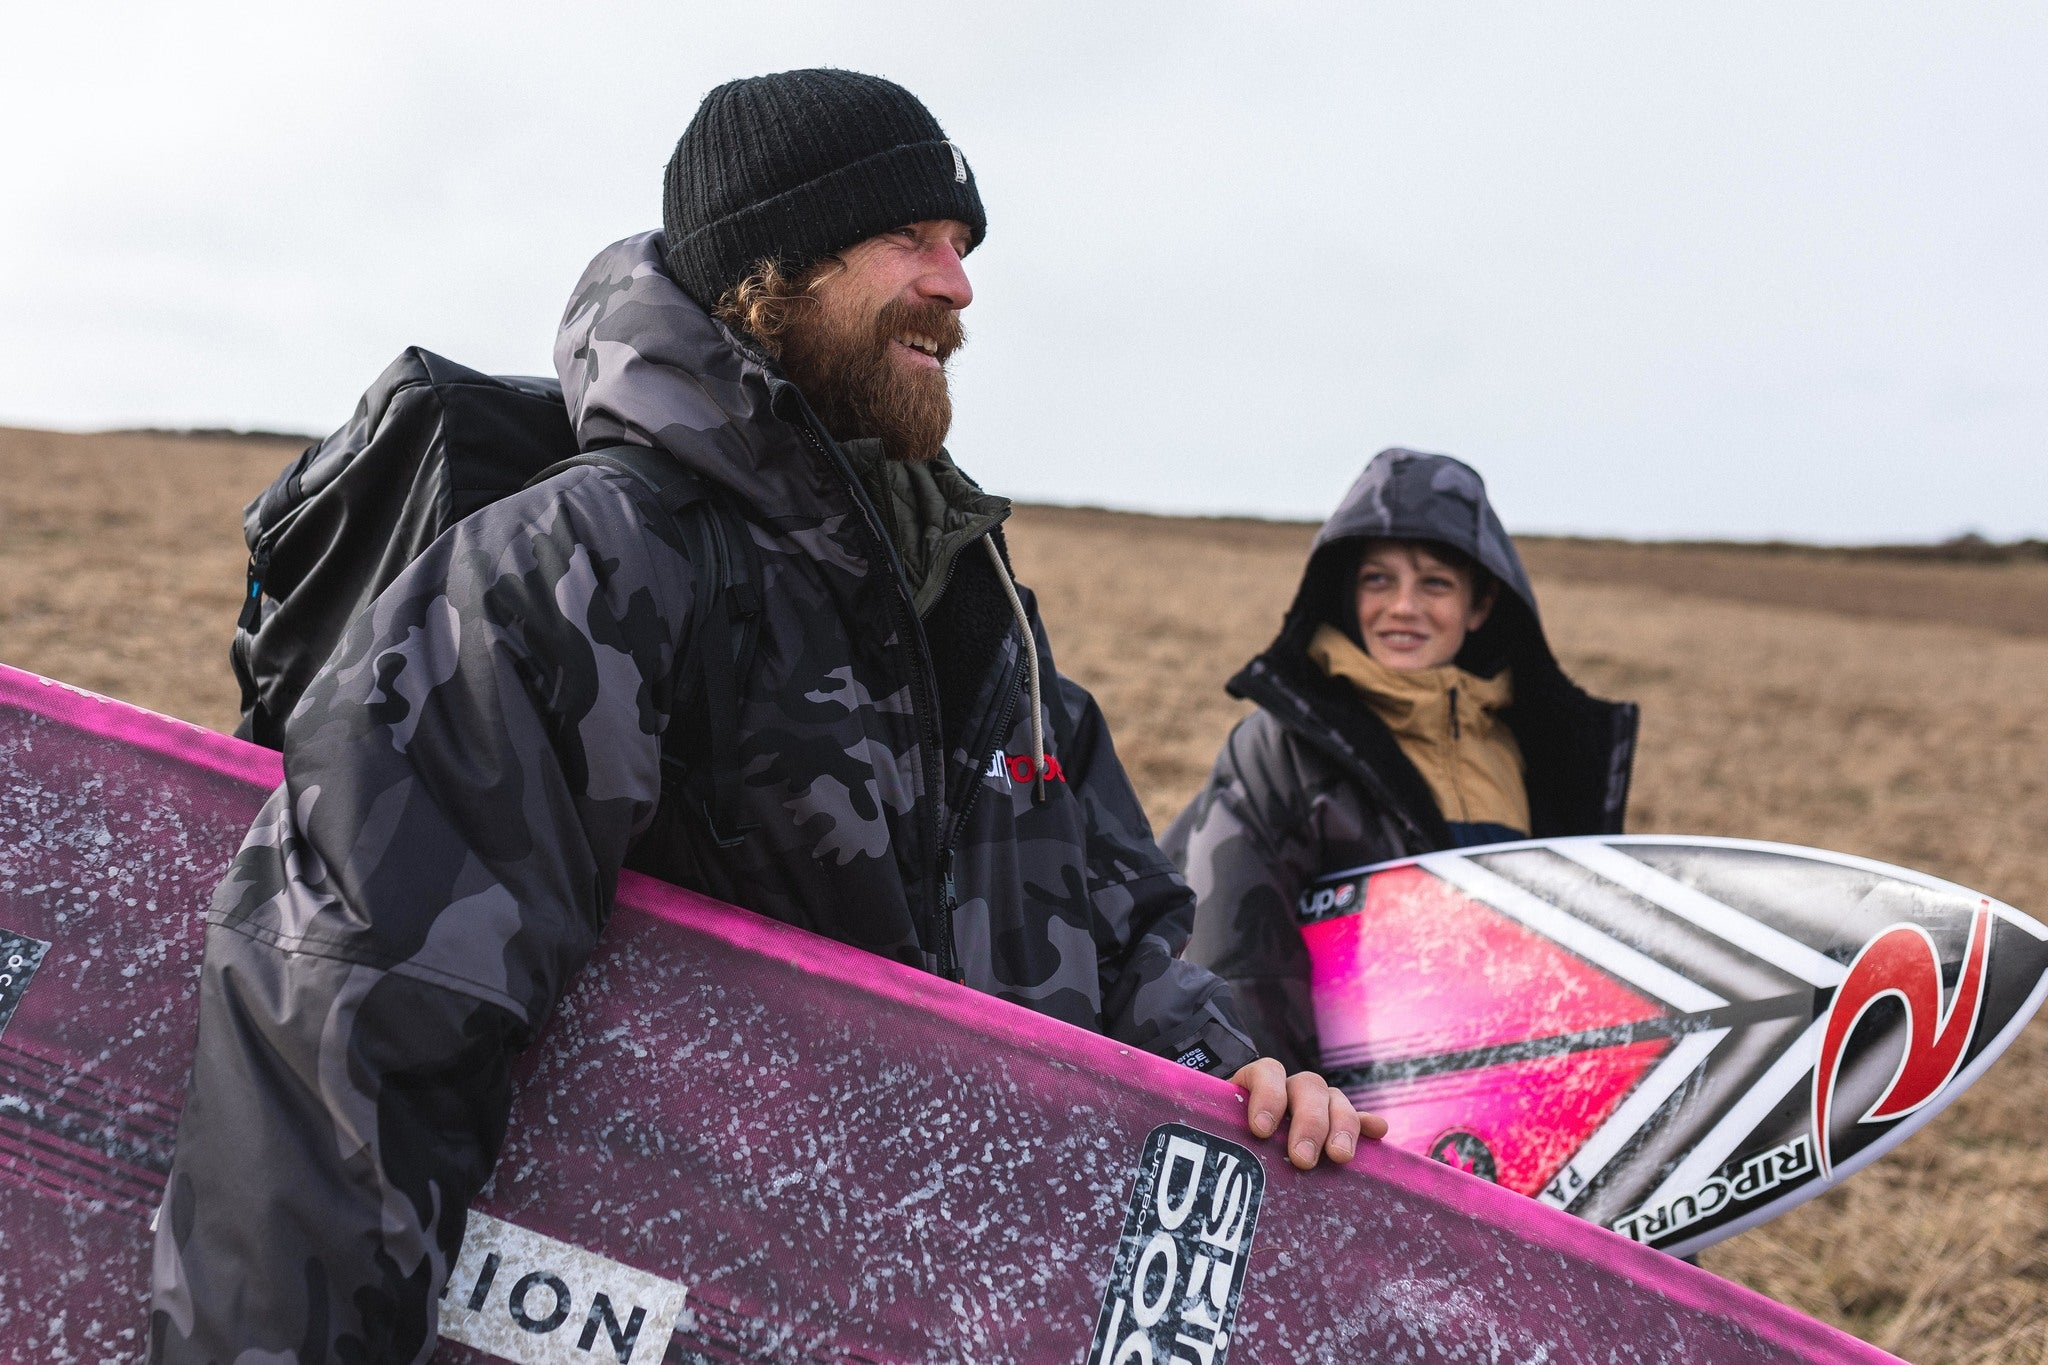 Ben and Lukas Skinner wearing Black Camo dryrobe Advance change robes whilst carrying surfboards